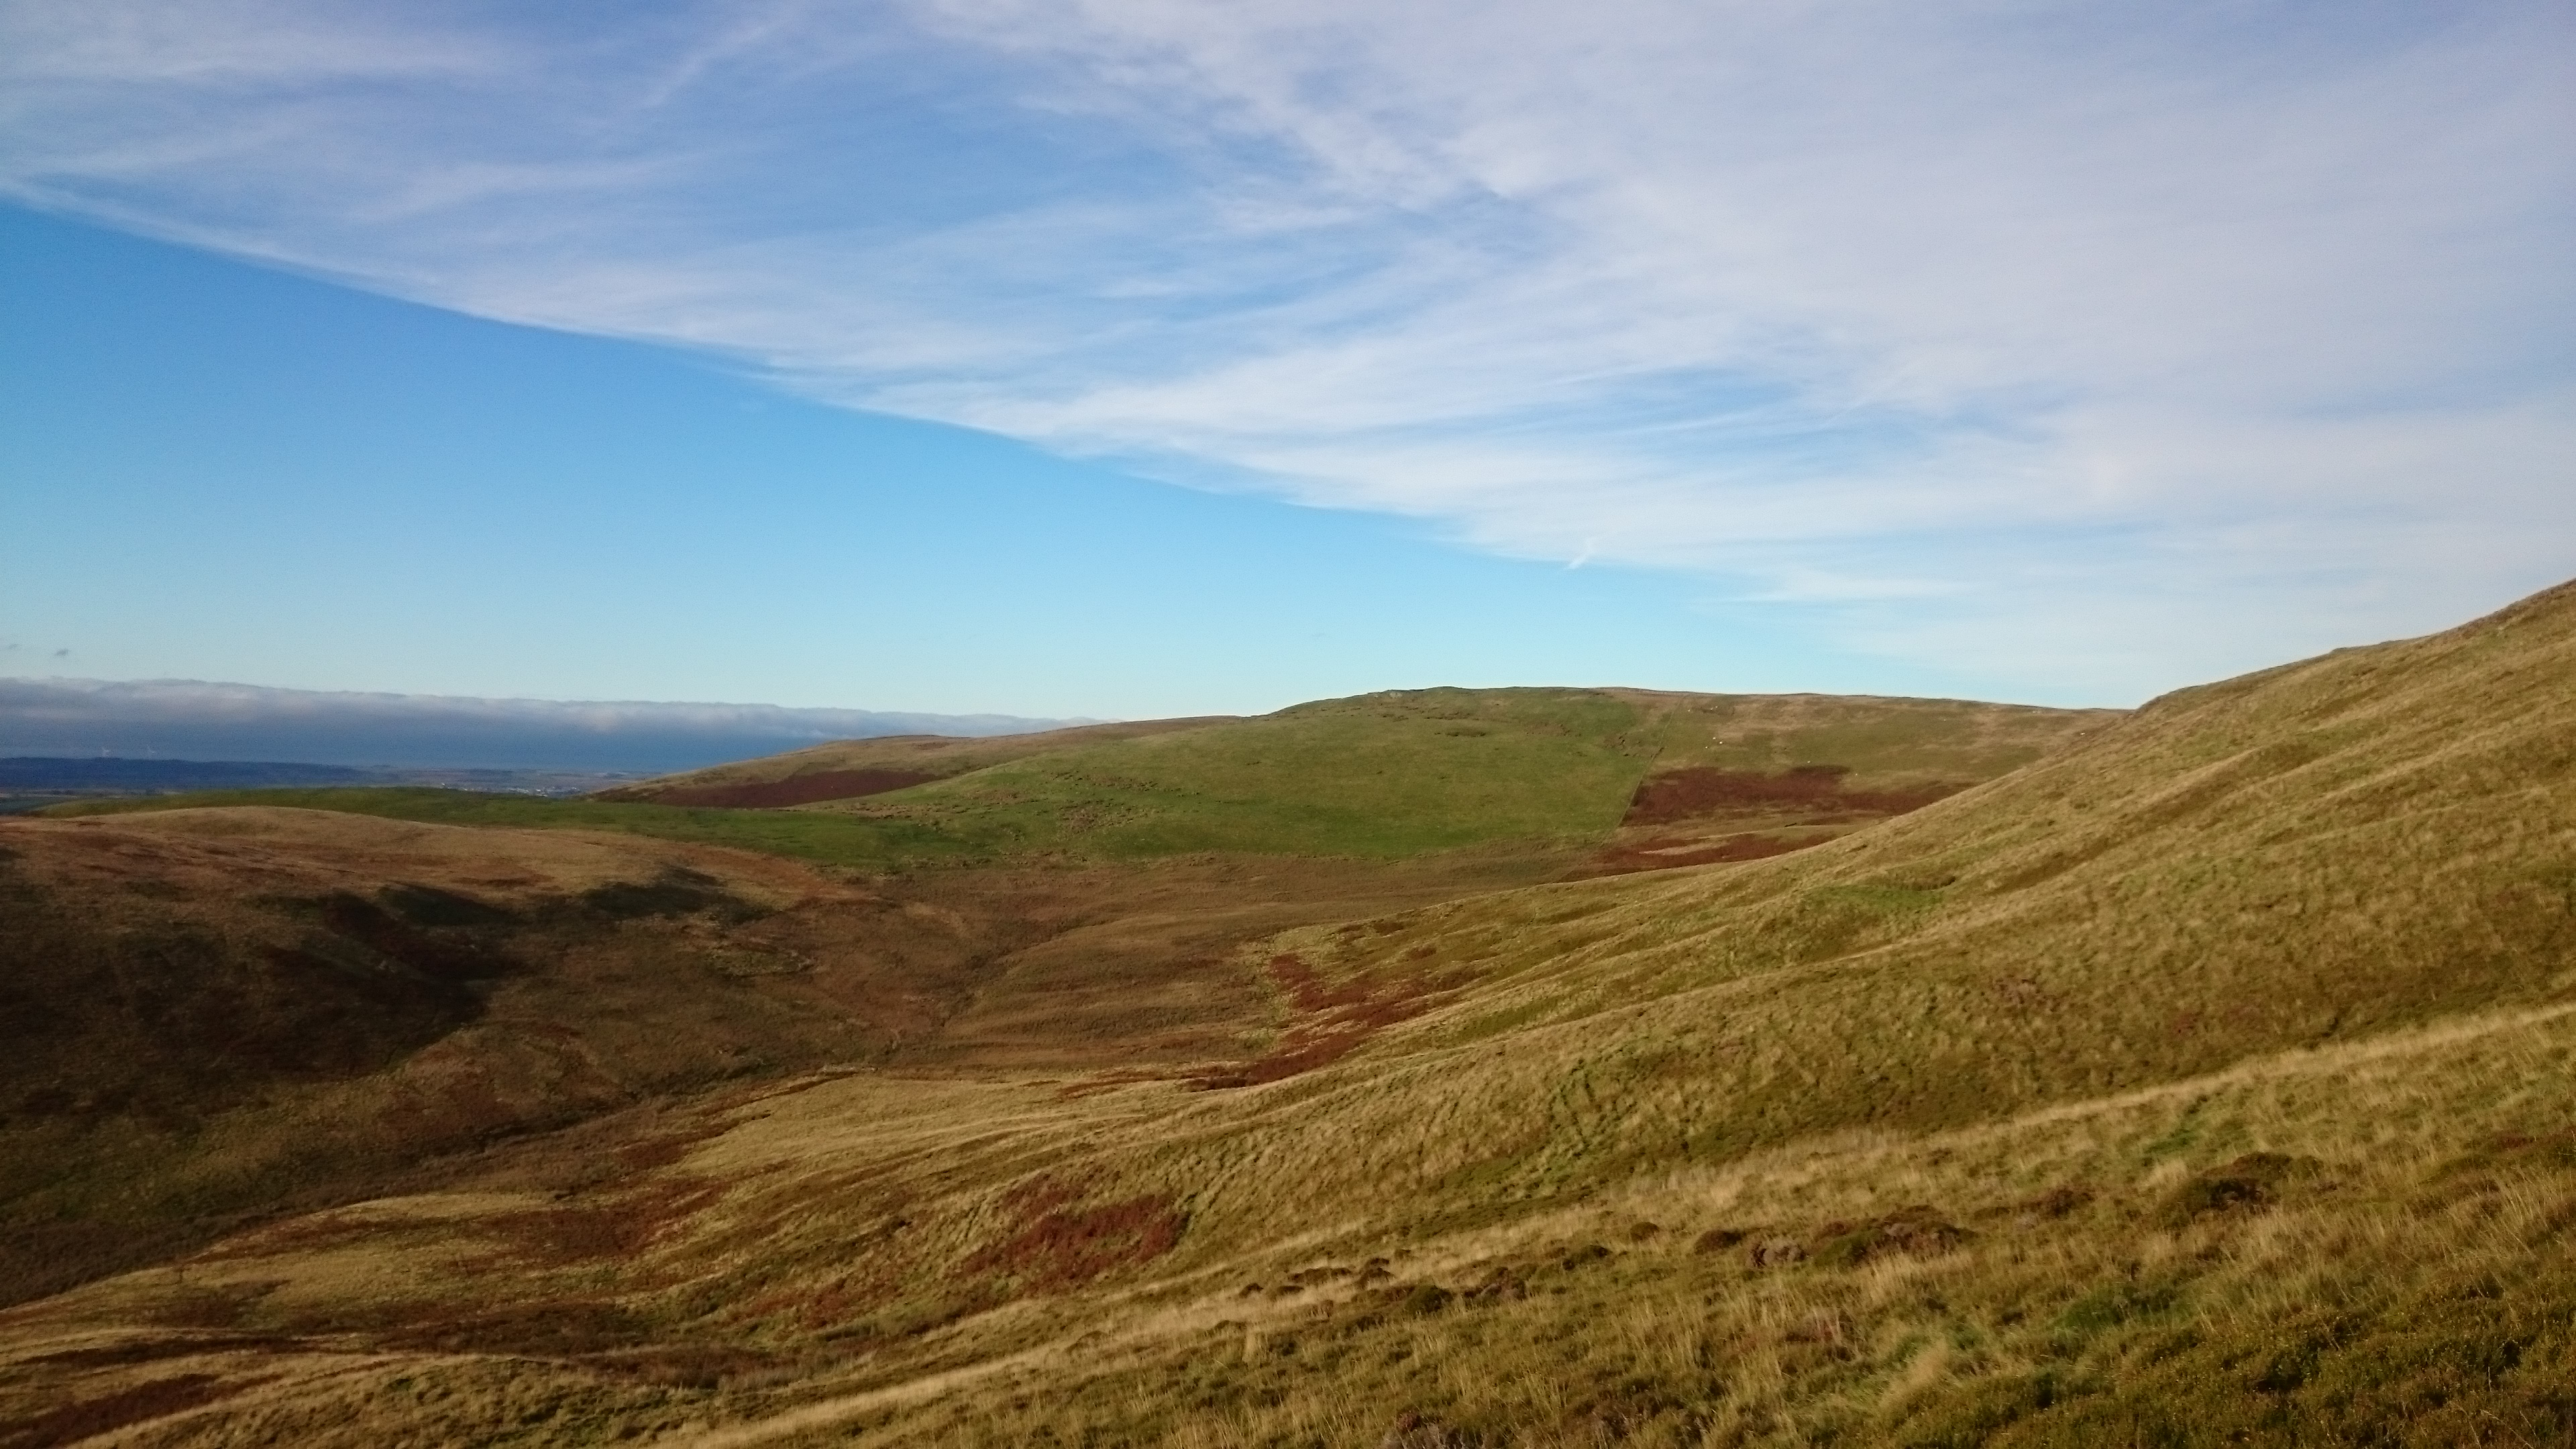 Fellbarrow, another on my things to do and places to see list